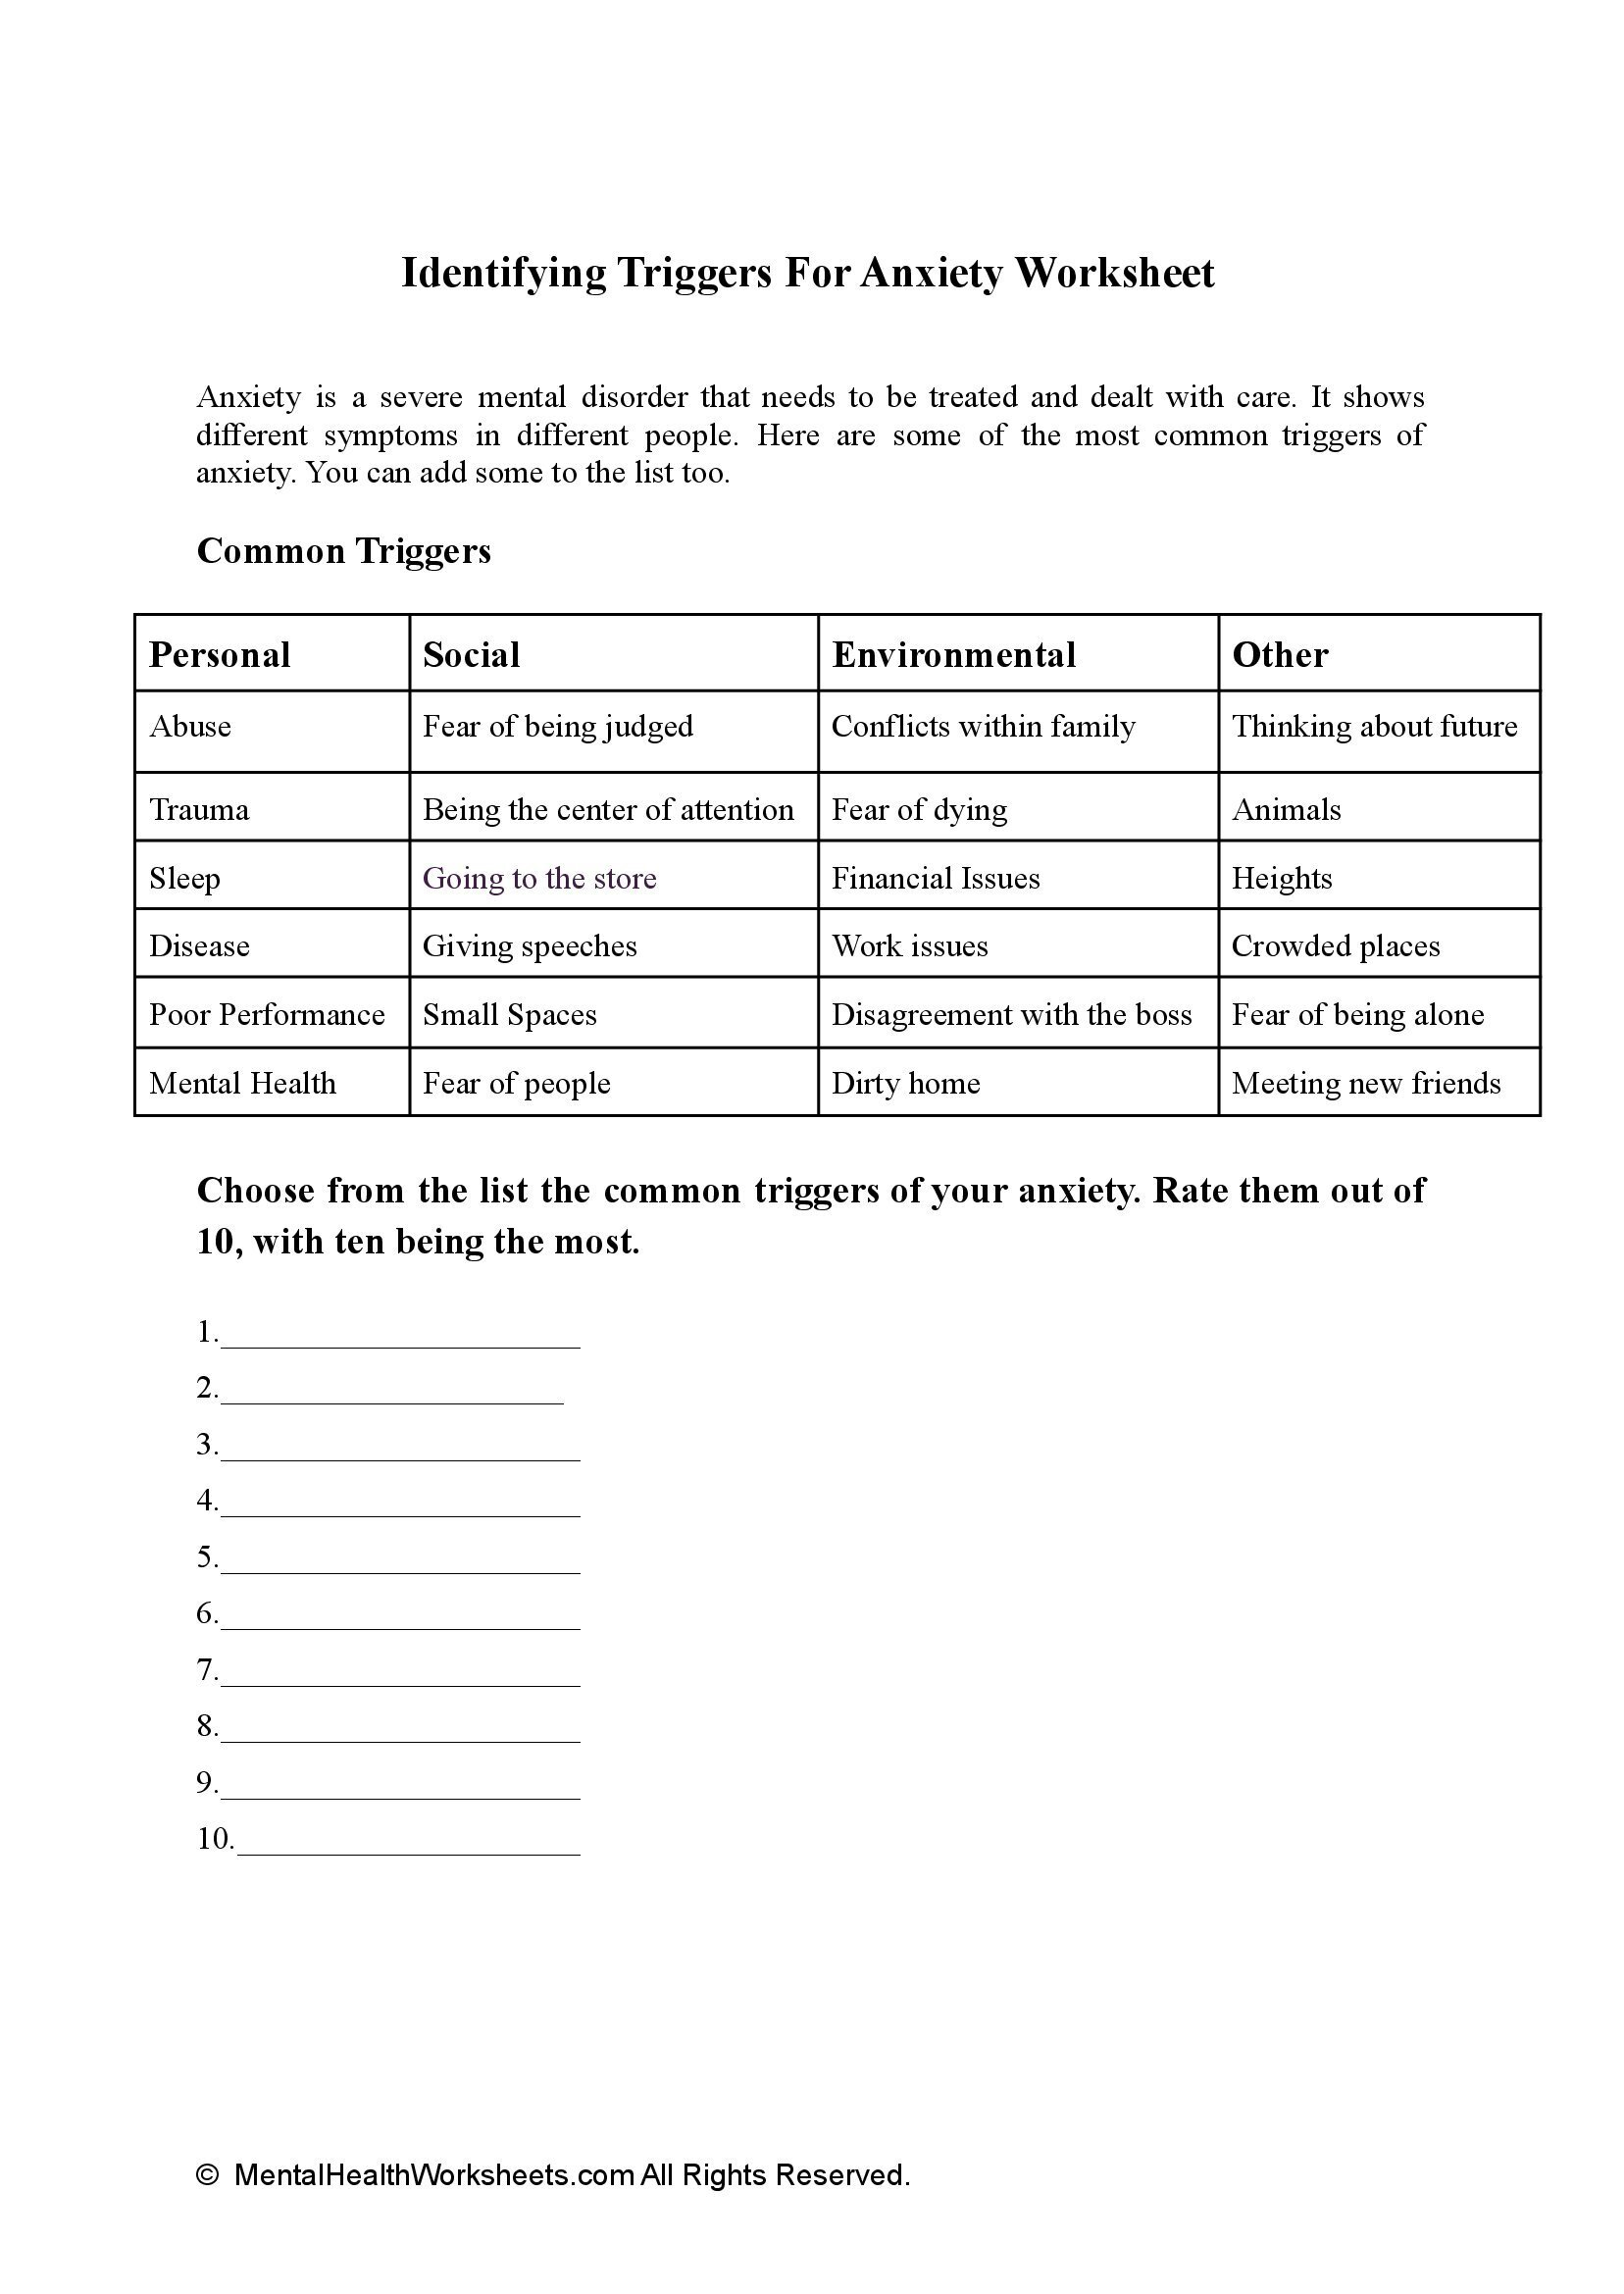 Identifying Triggers For Anxiety Worksheet